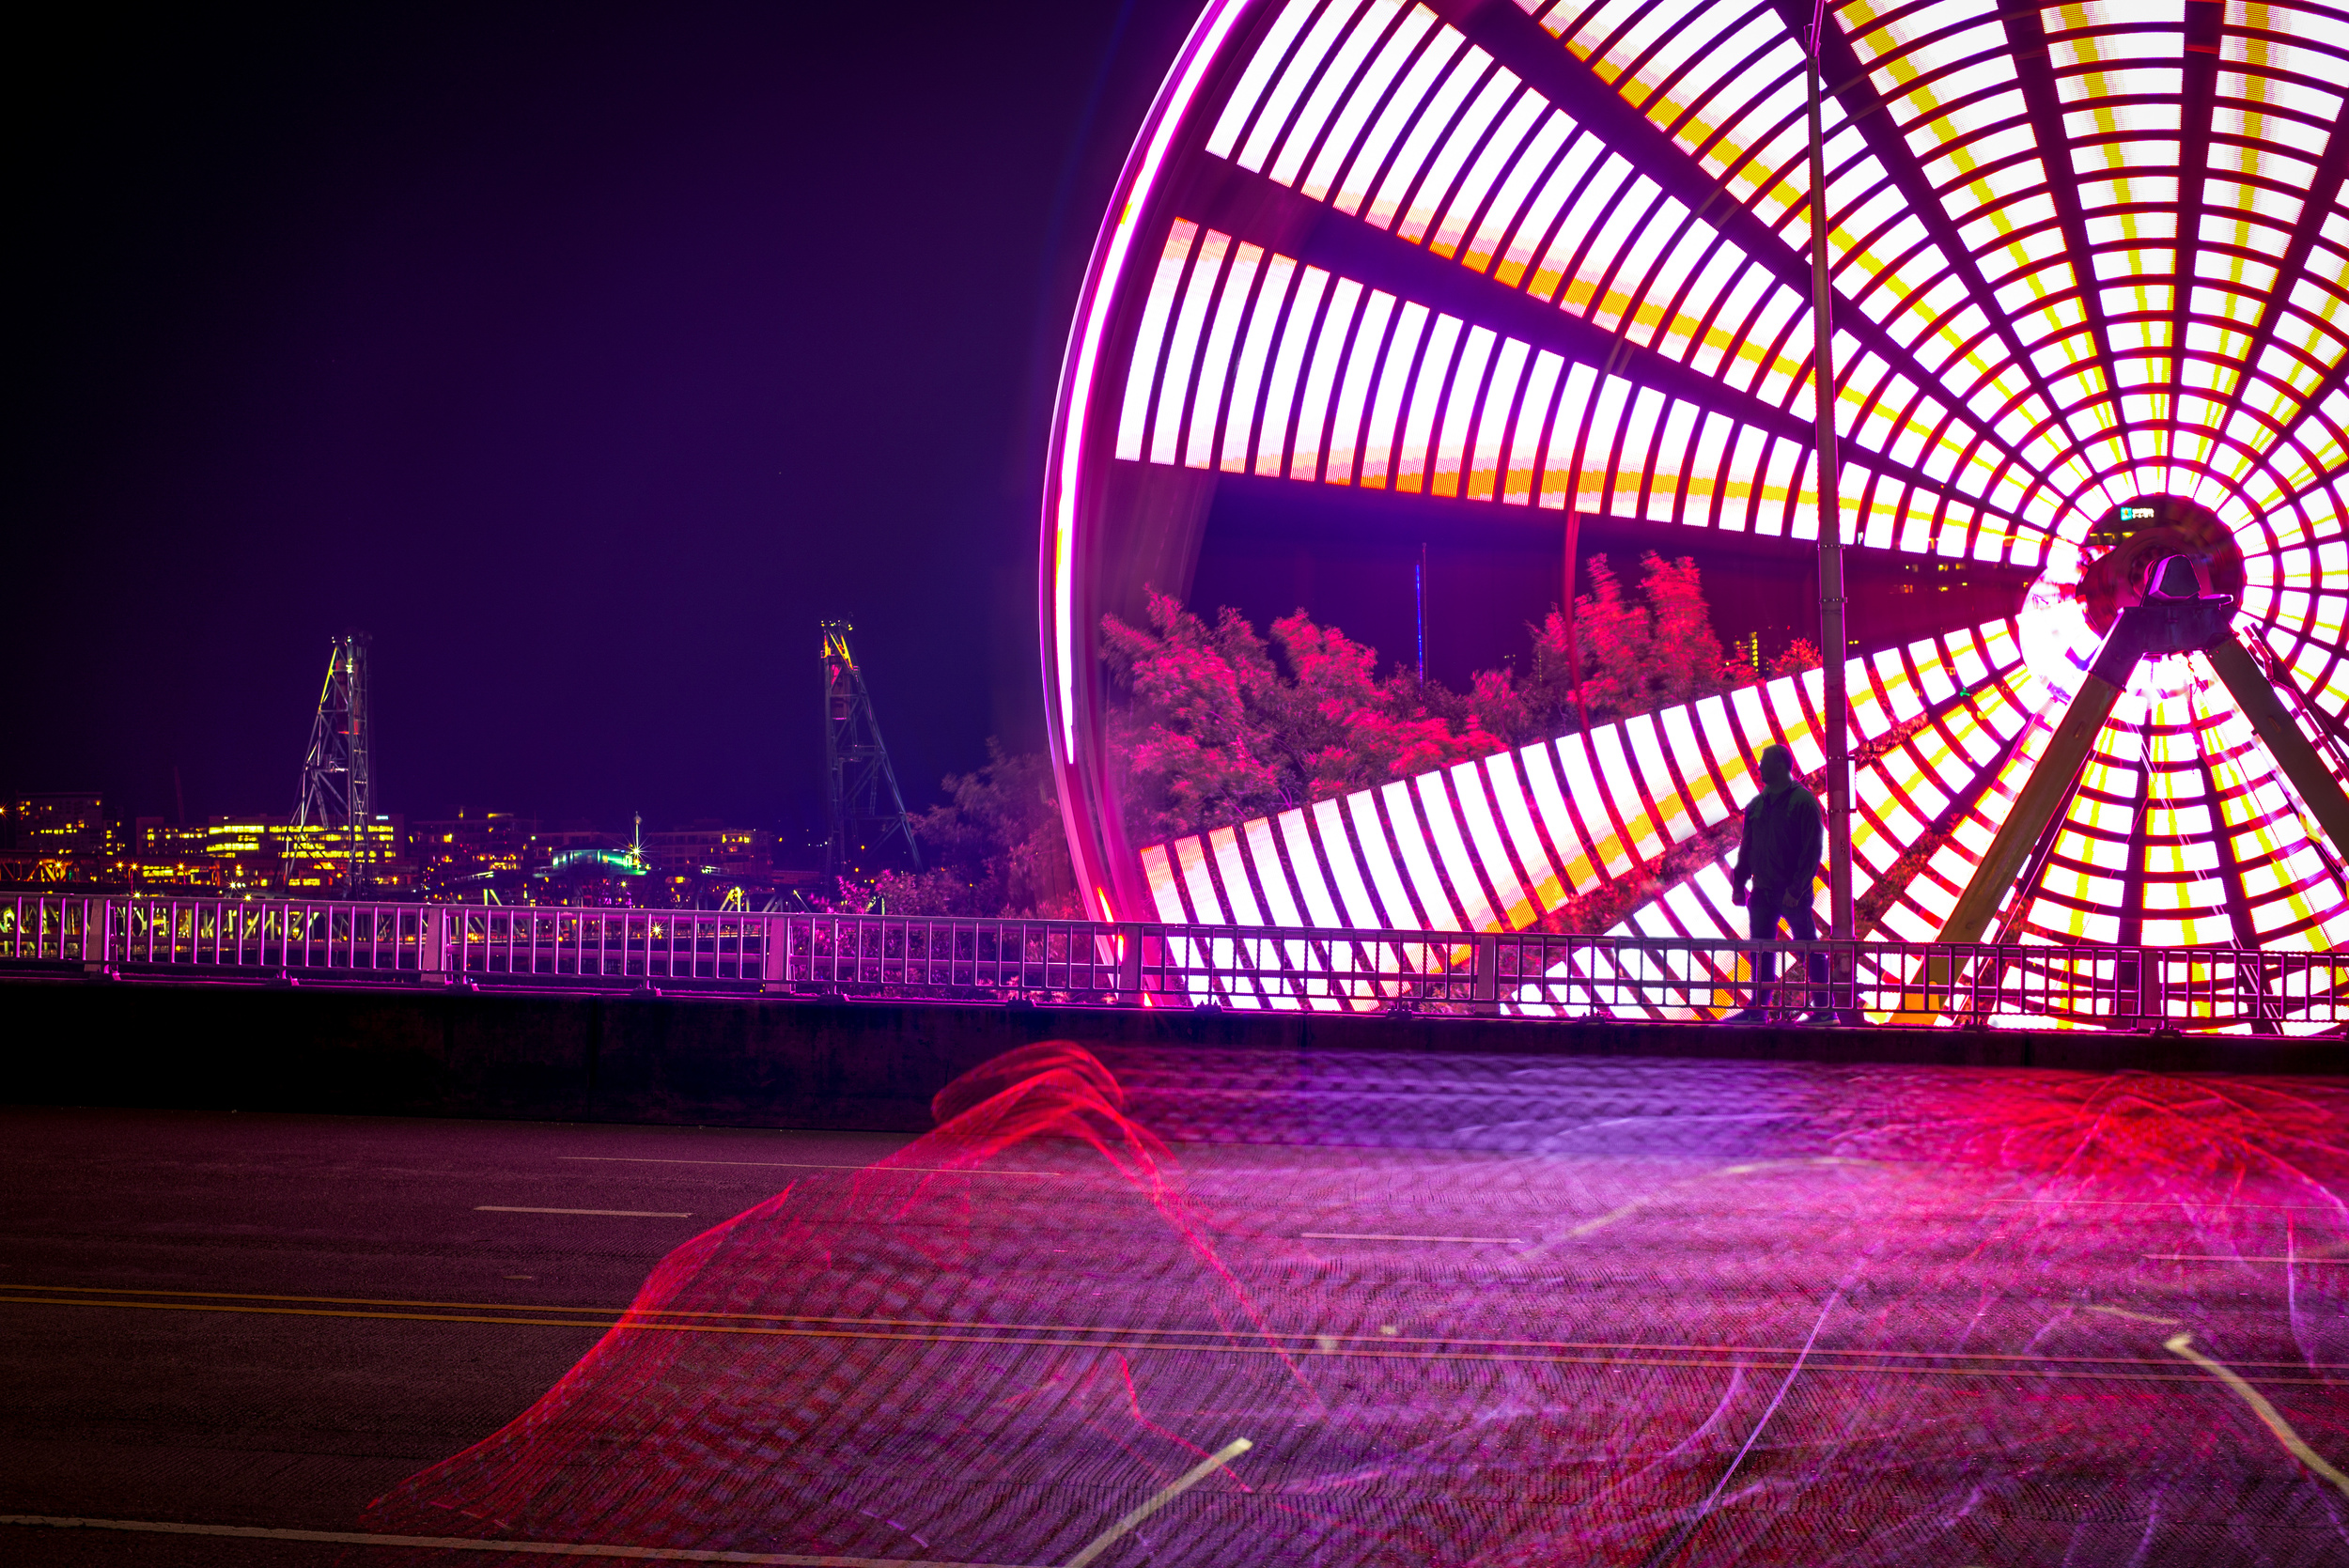 A man pauses in front of a Ferris Wheel on the Morrison st. bridge